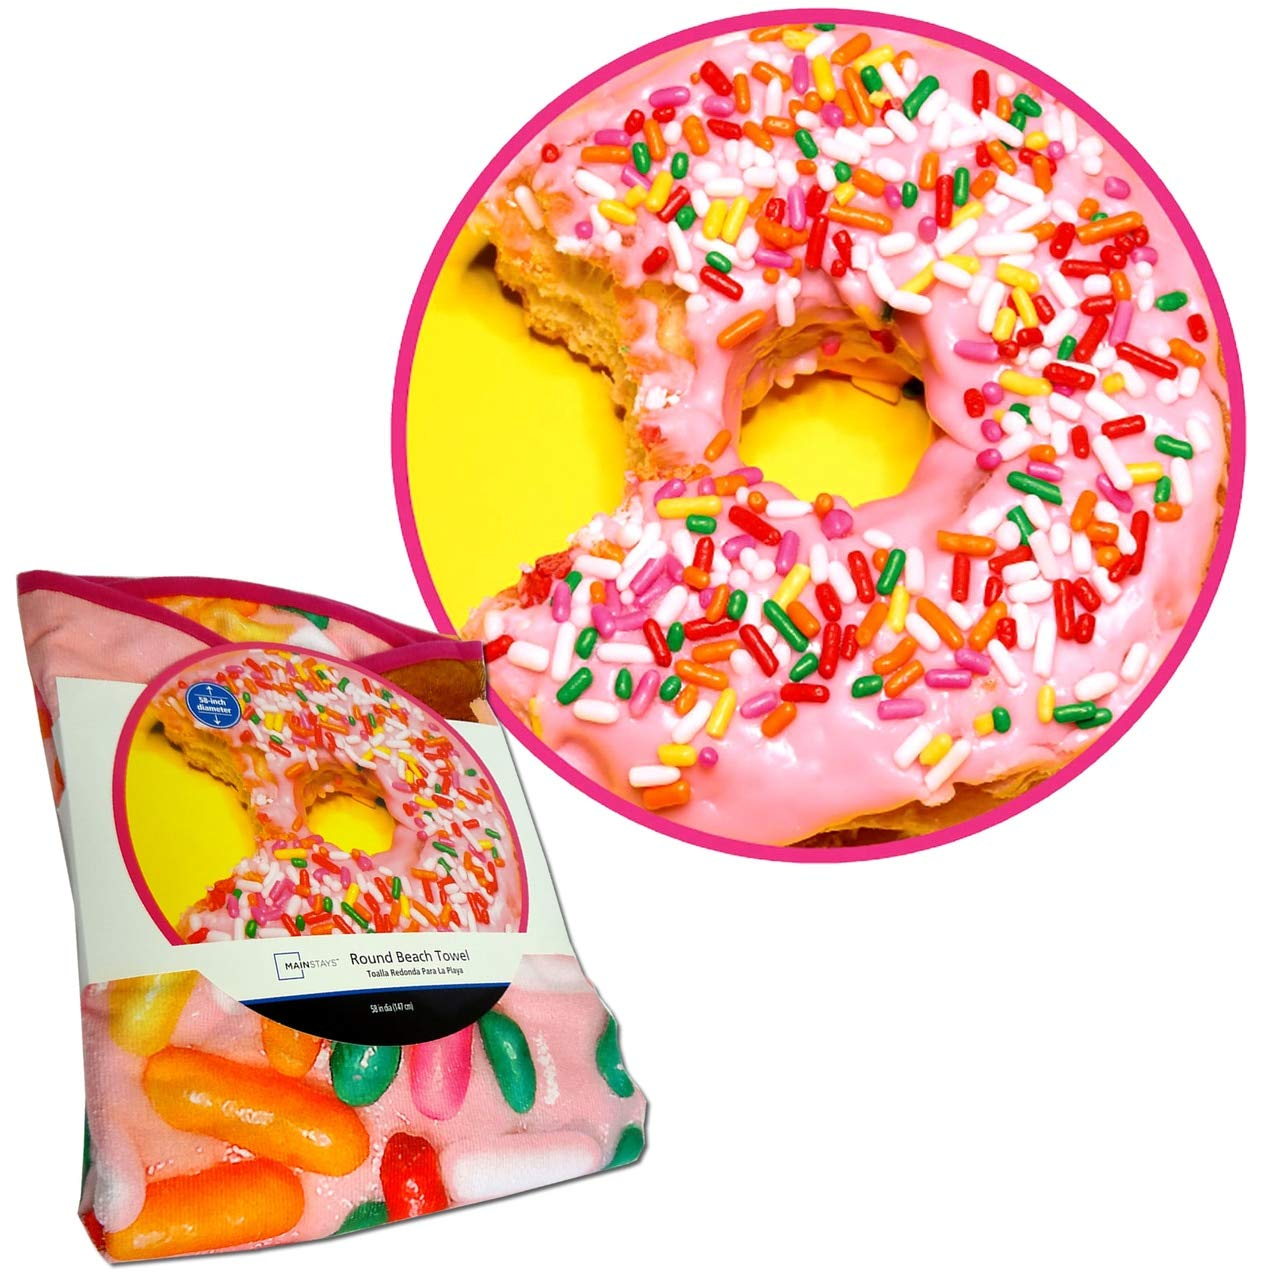 Amazon.com: Wal-Mart Mainstays Round Beach Towel Doughnut 58 IN dia: Home & Kitchen